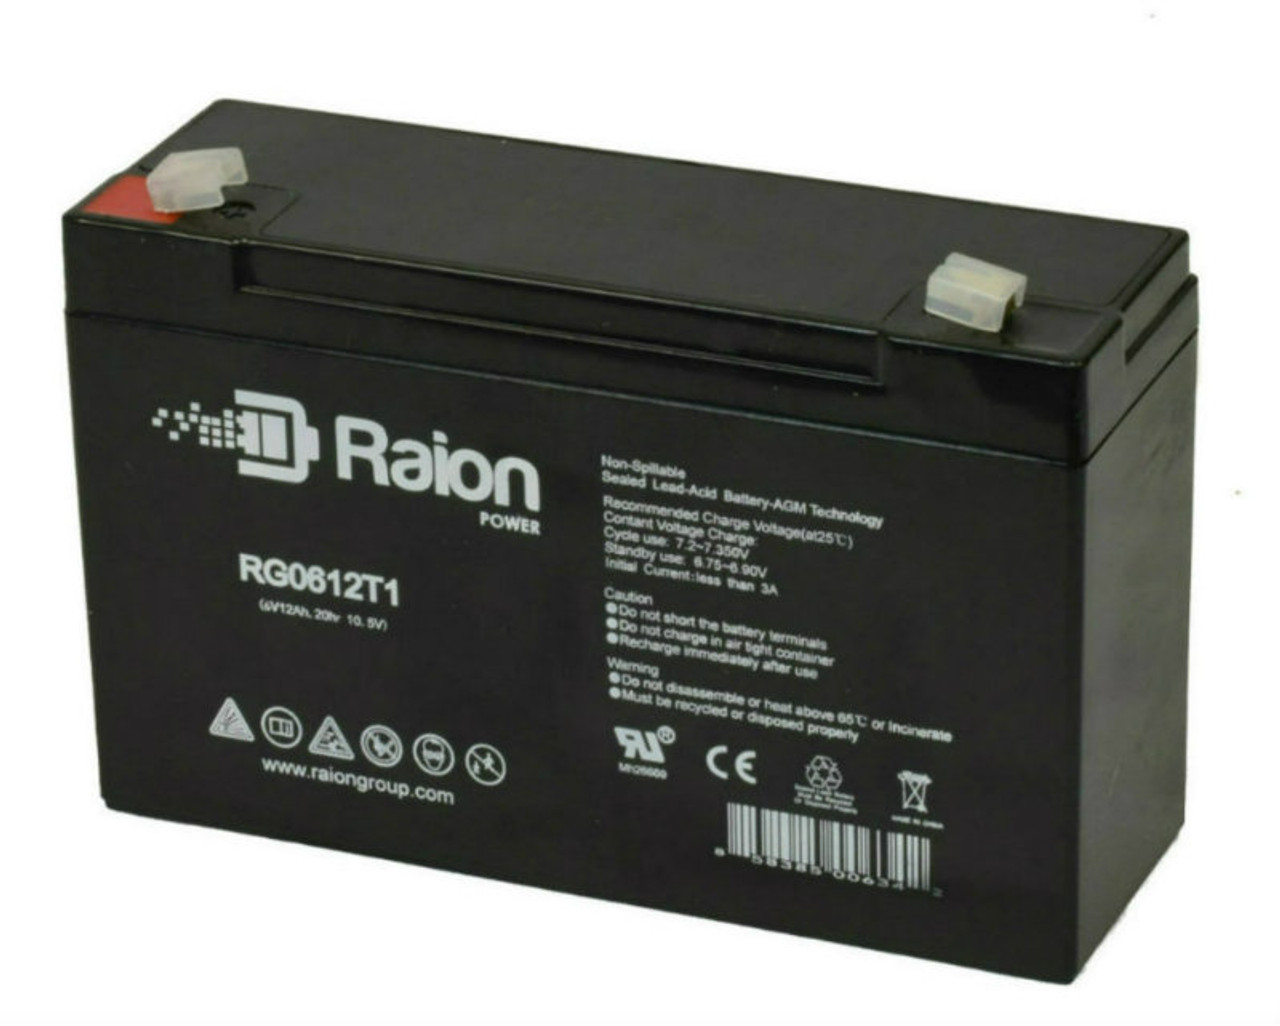 Raion Power RG06120T1 Replacement Battery Pack for Sure-Lites 15001XJ emergency light